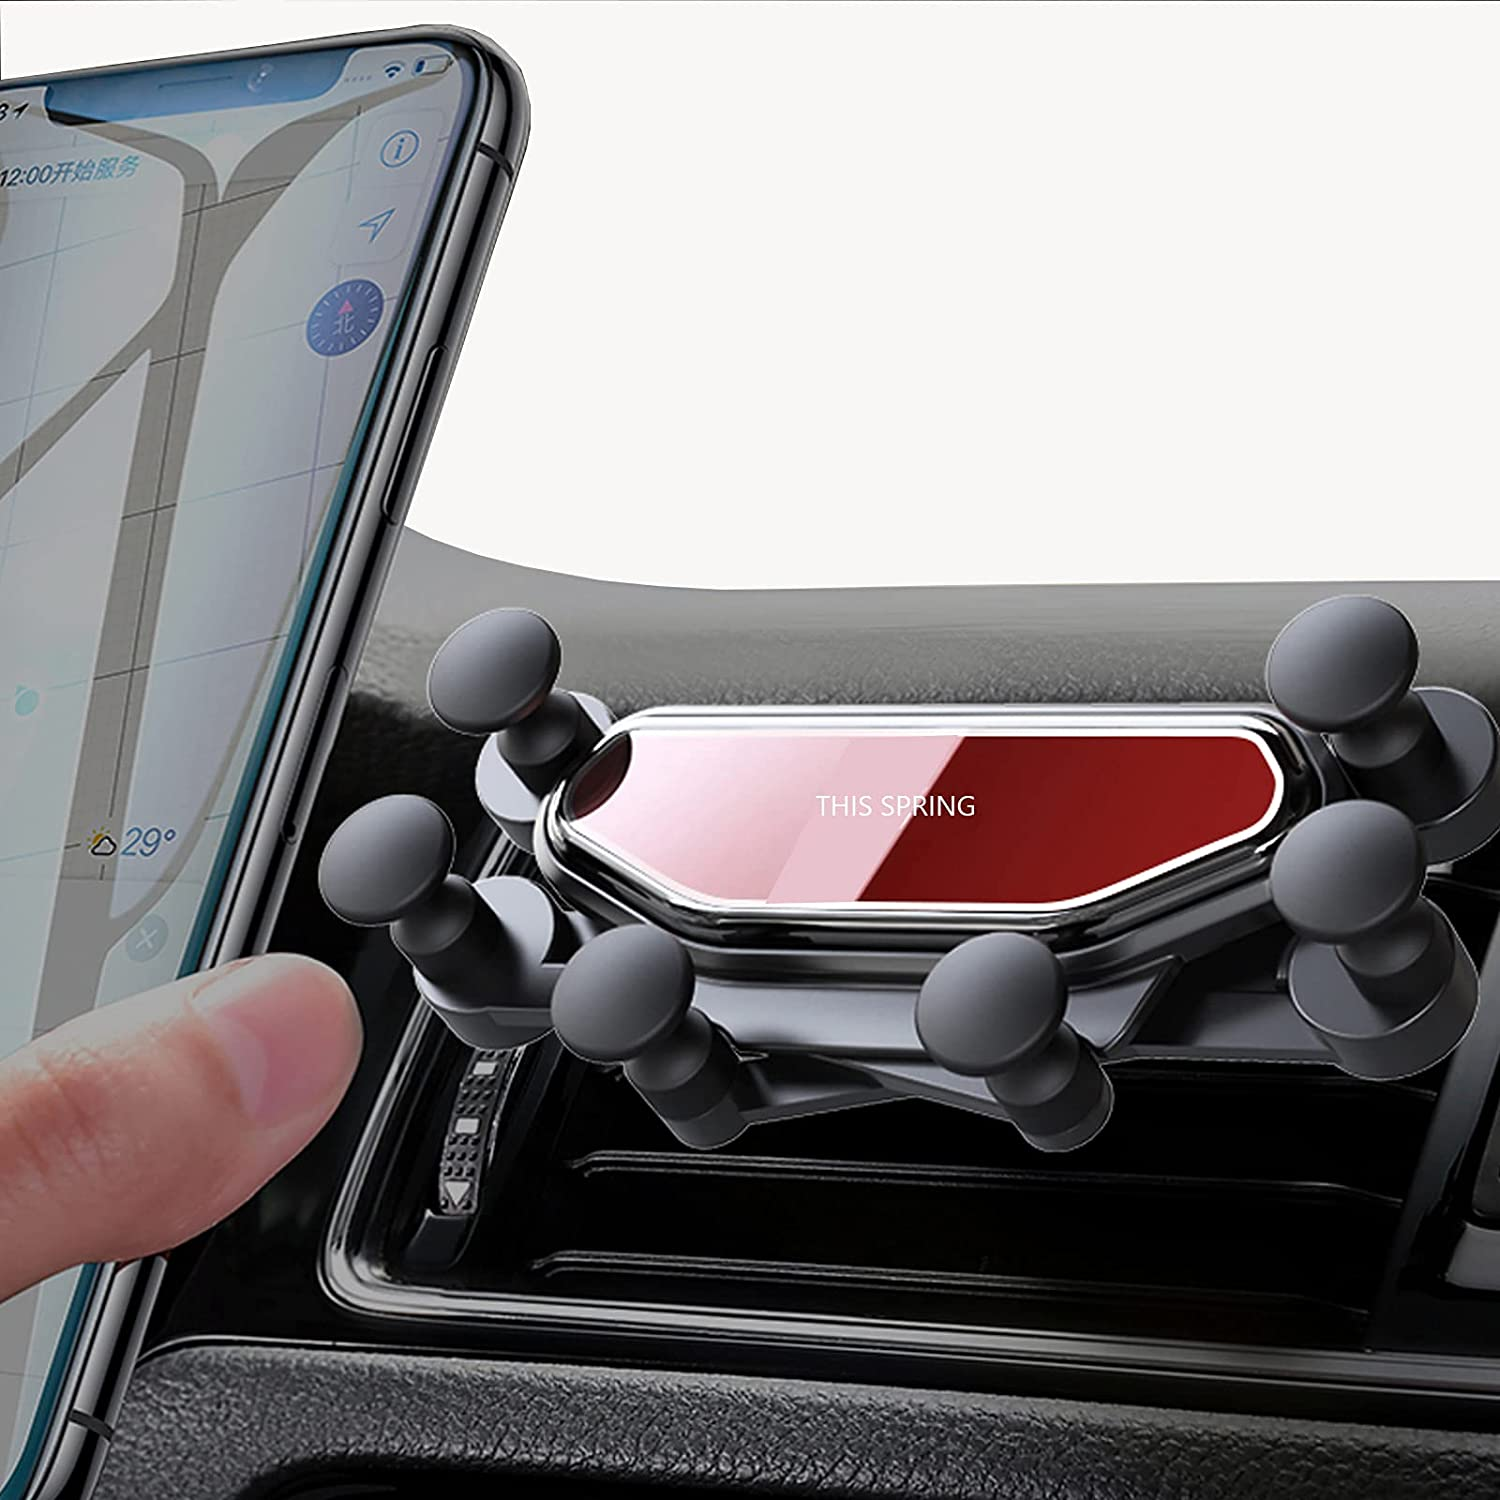 LUVIN Phone Holder for Car 2021 Upgraded Gravity Phone Holder for Car Mount Mount with One Hand Operation Design Vent with Hook Clip Auto Lock Hands Free Air Vent Cell Phone Car for Smartphone Mobile